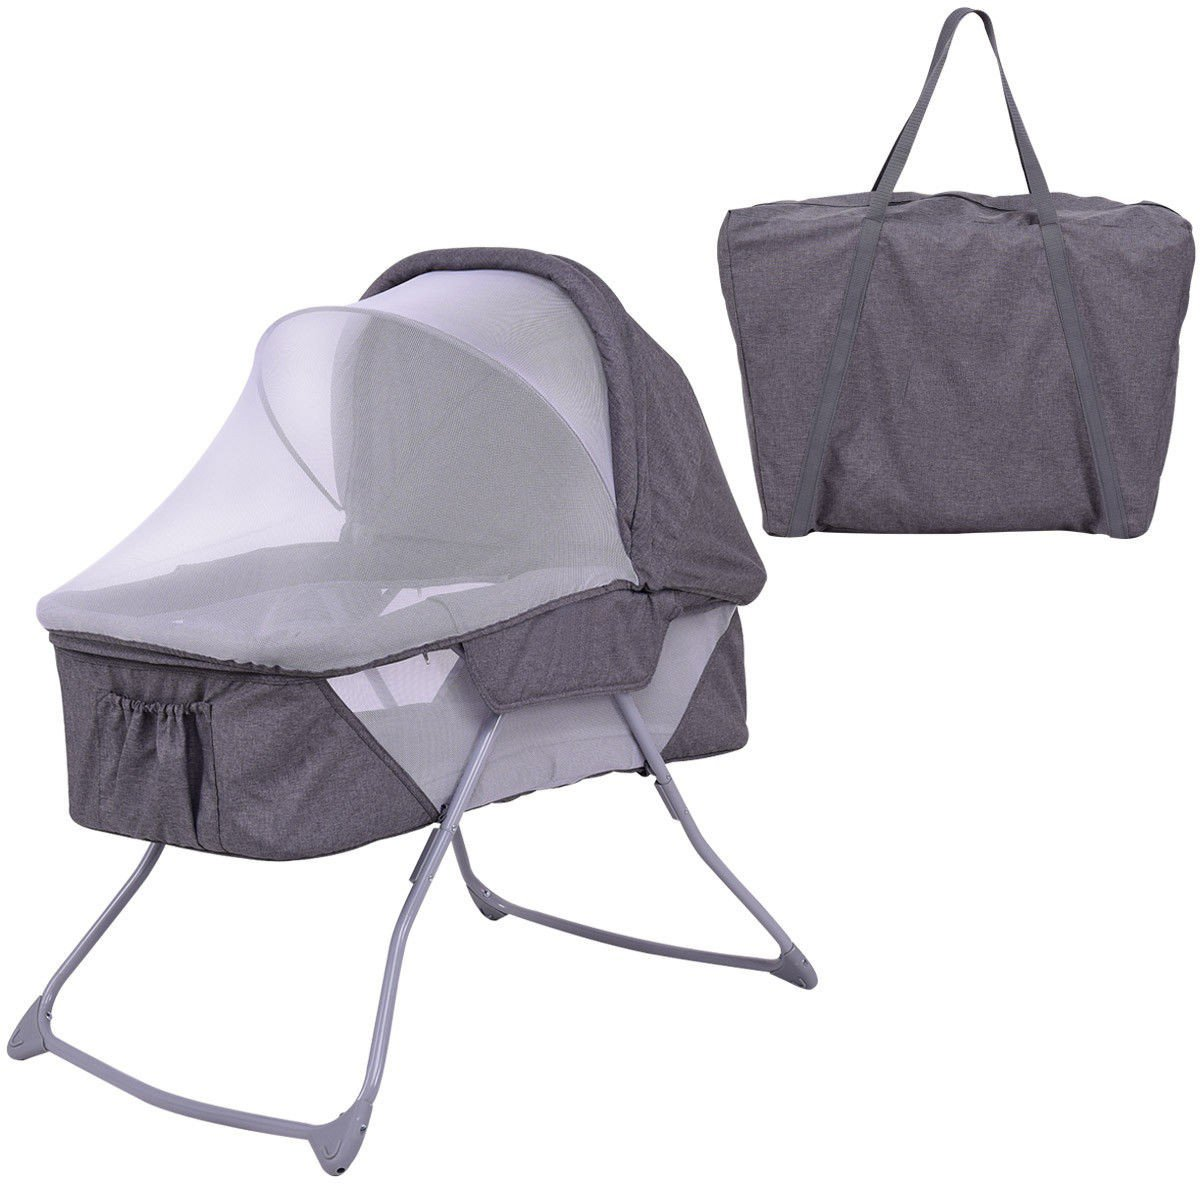 Custpromo Lightweight Foldable Baby Bassinet Rocking Bed w/Mosquito Net Bedding (Gray)